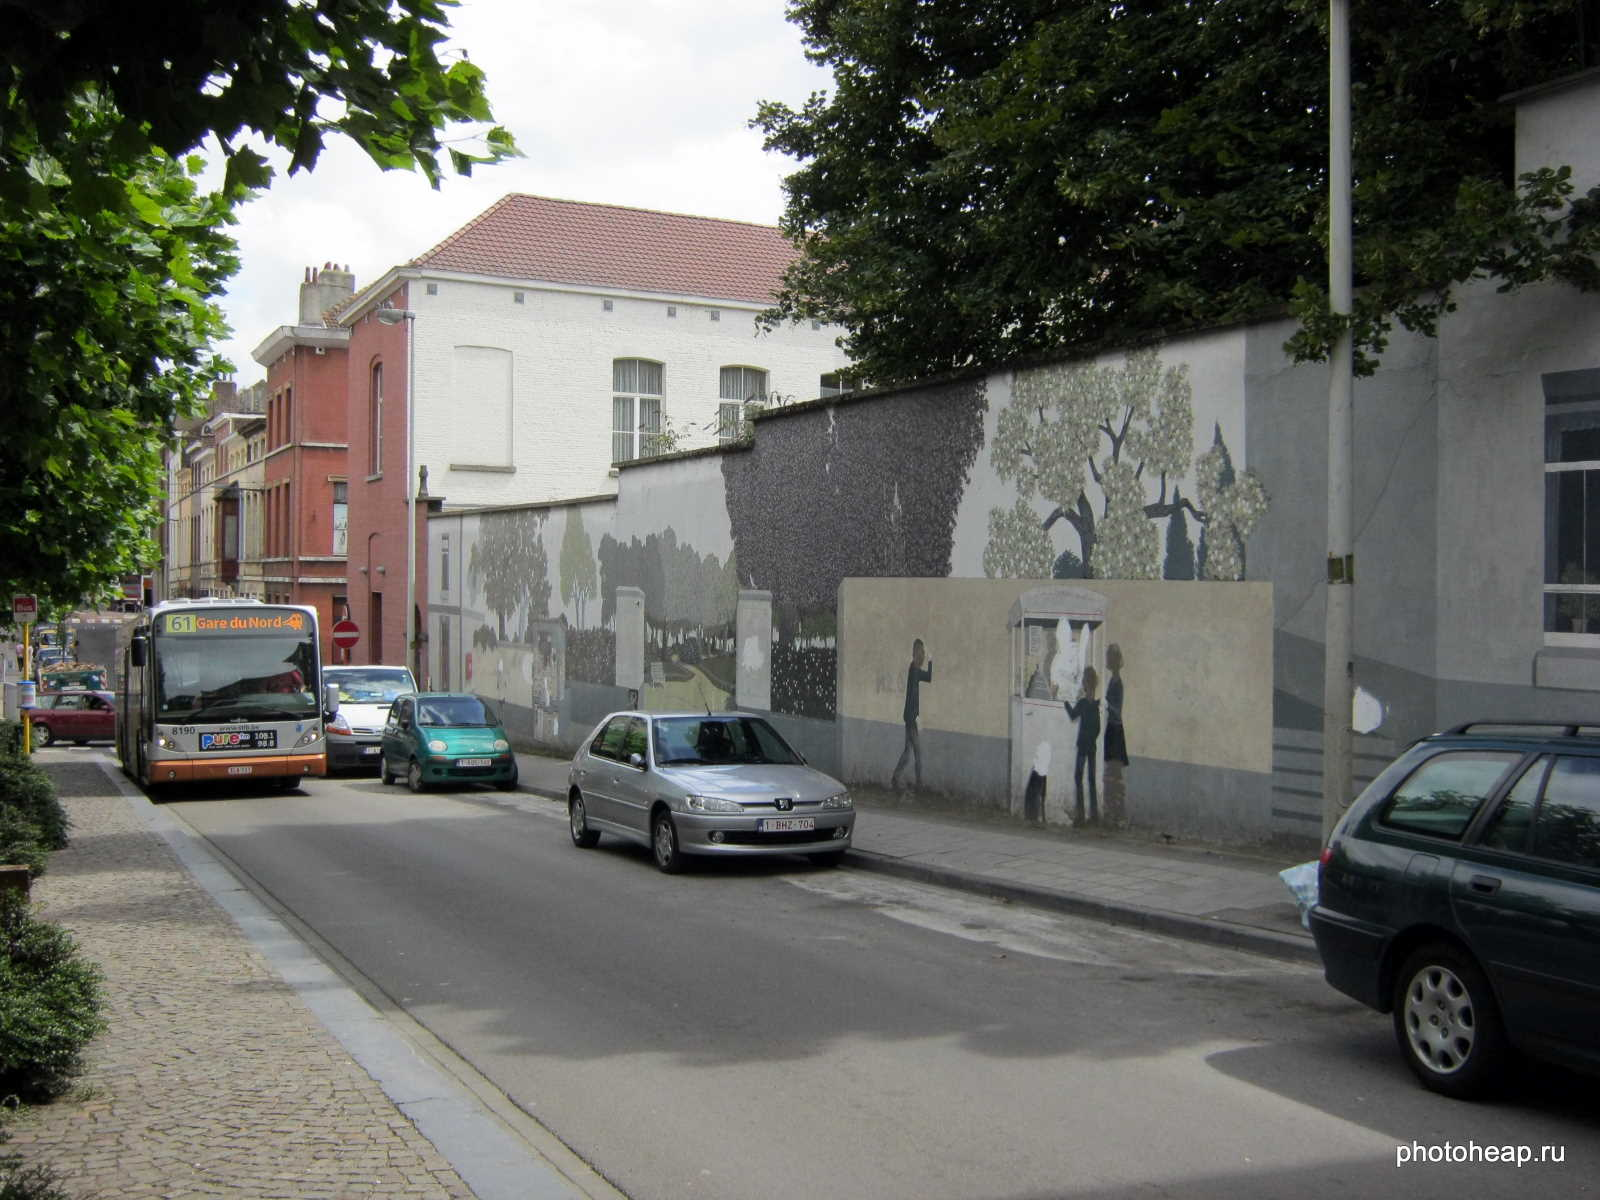 Brussels wall painting